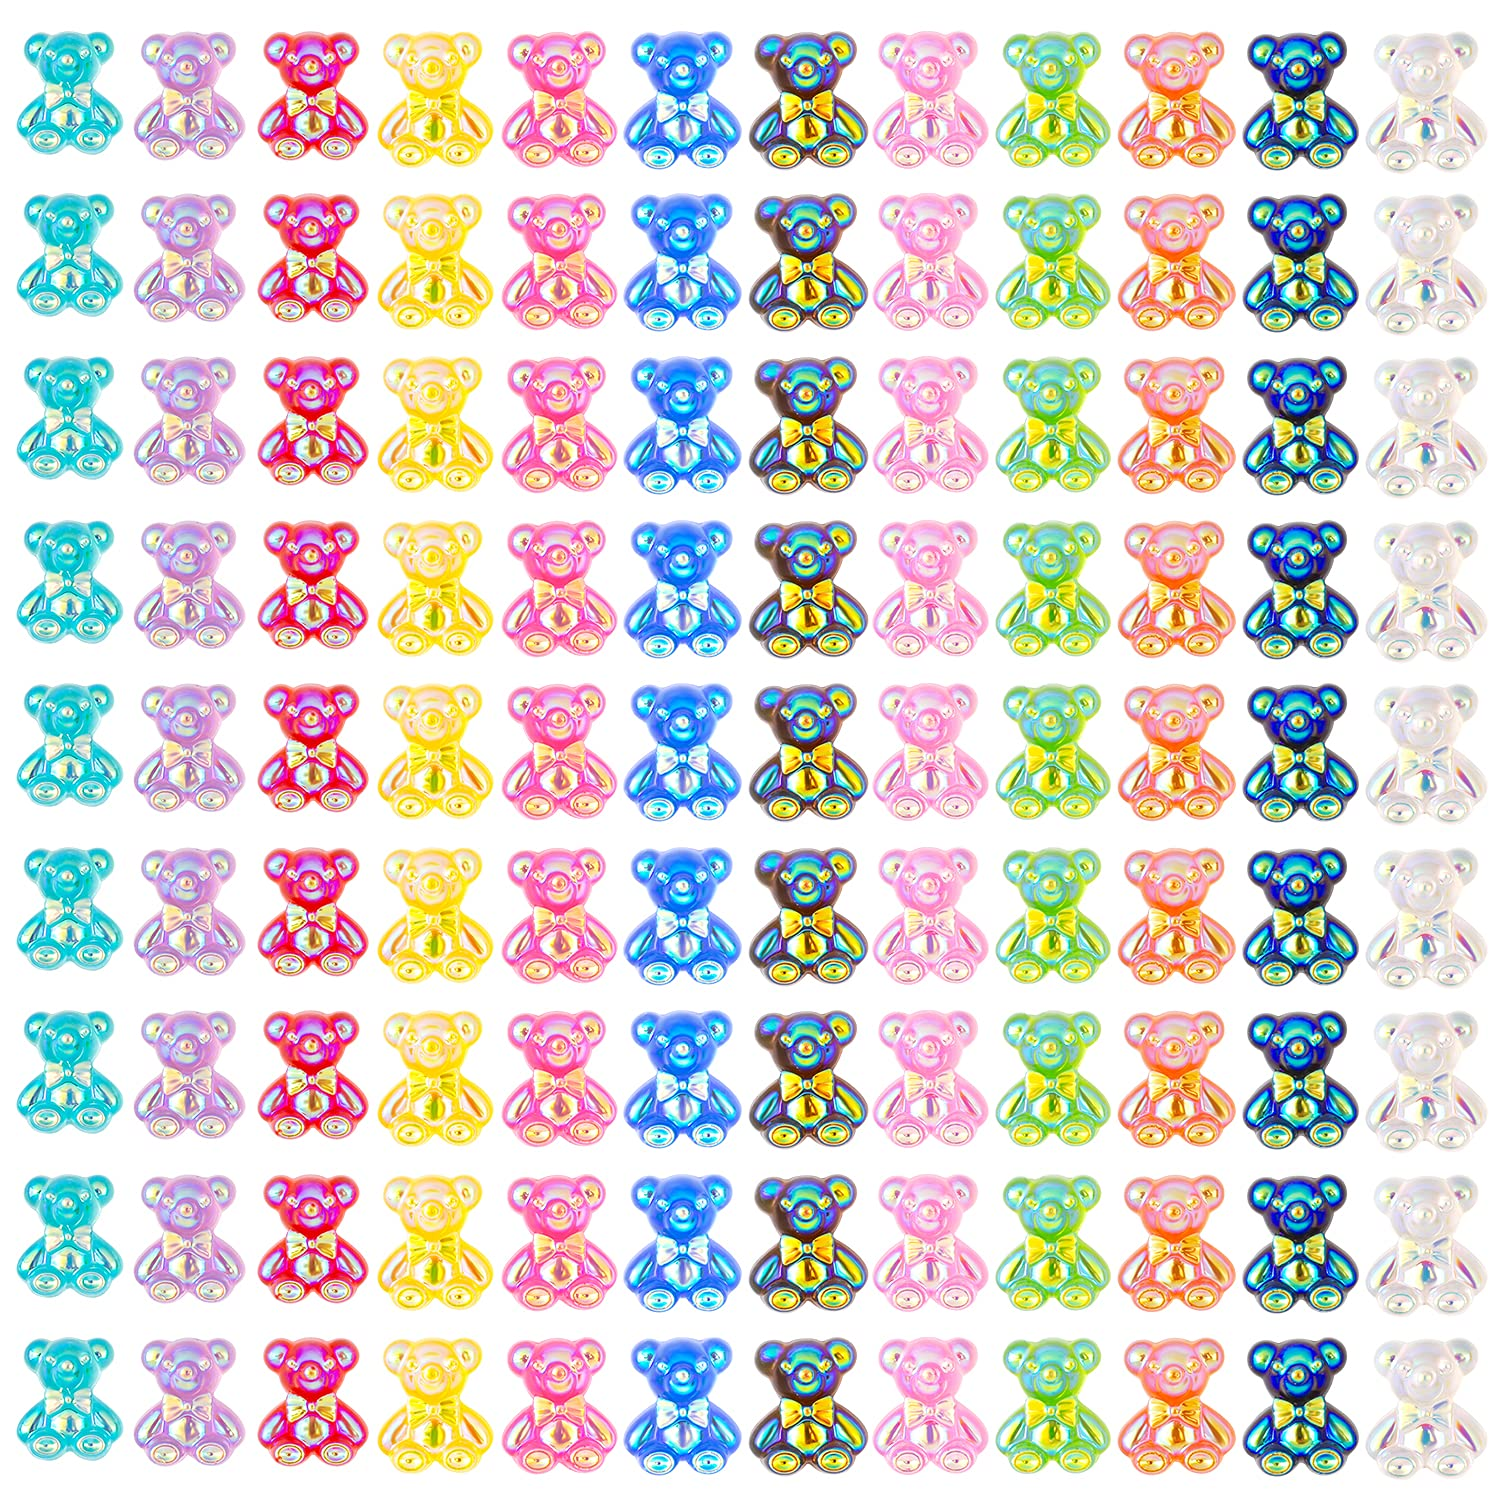 3D Cute Mini Bear Resin Nail Art Decorations, Crystal Bear Shaped Nail Charms Art Accessories, 12 Color Nails Glitter Jelly Ornaments Design Manicure Tips Decor 60pcs Small